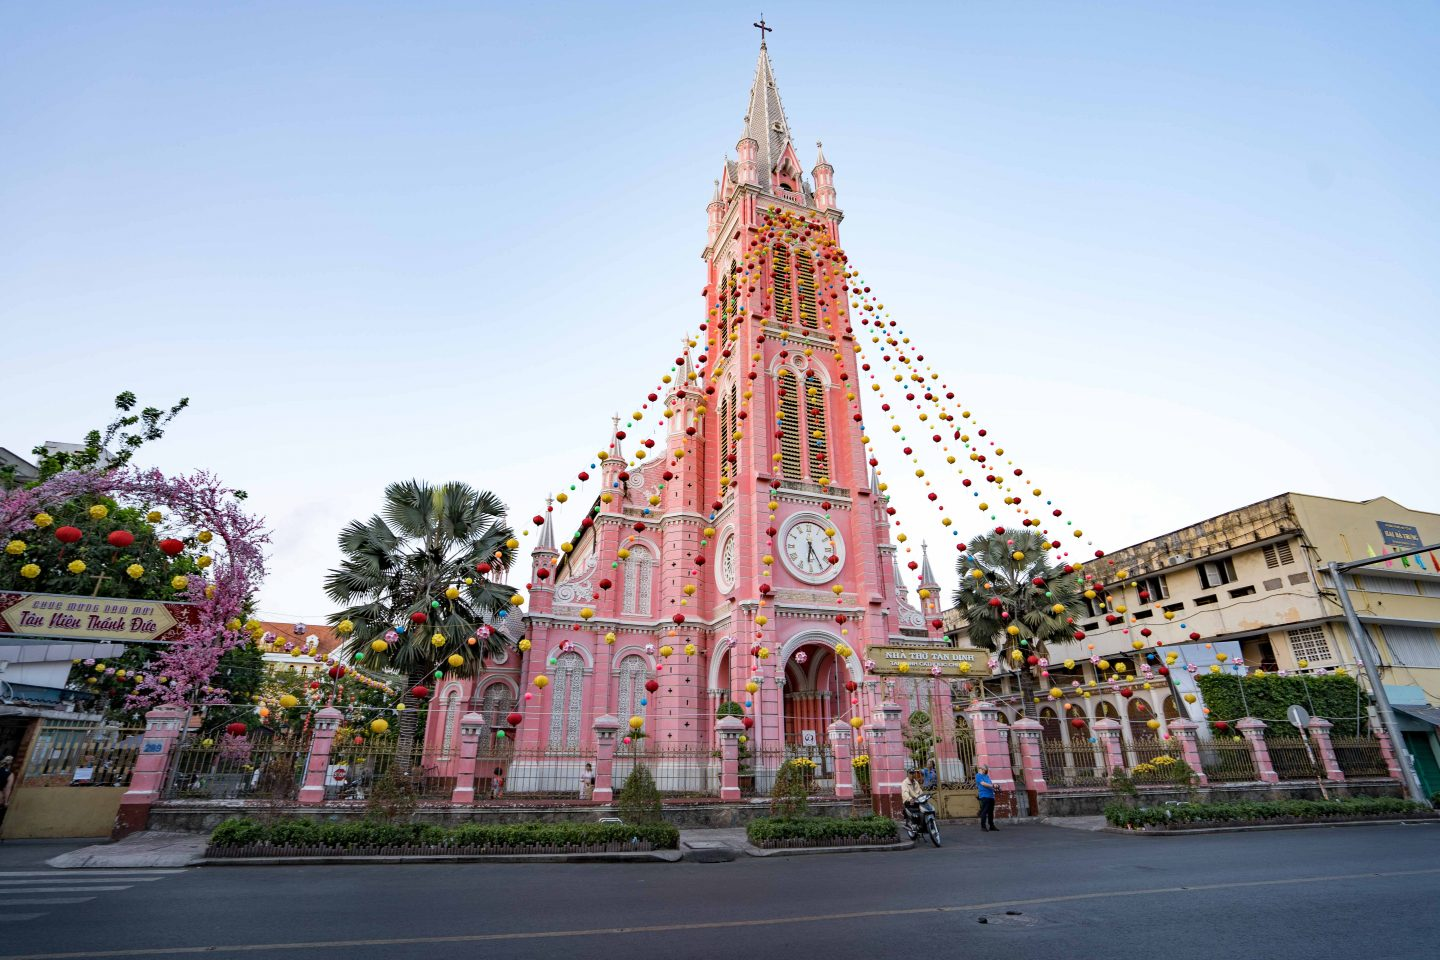 HCMC PINK church- One Month in Vietnam - Live Life and Roam